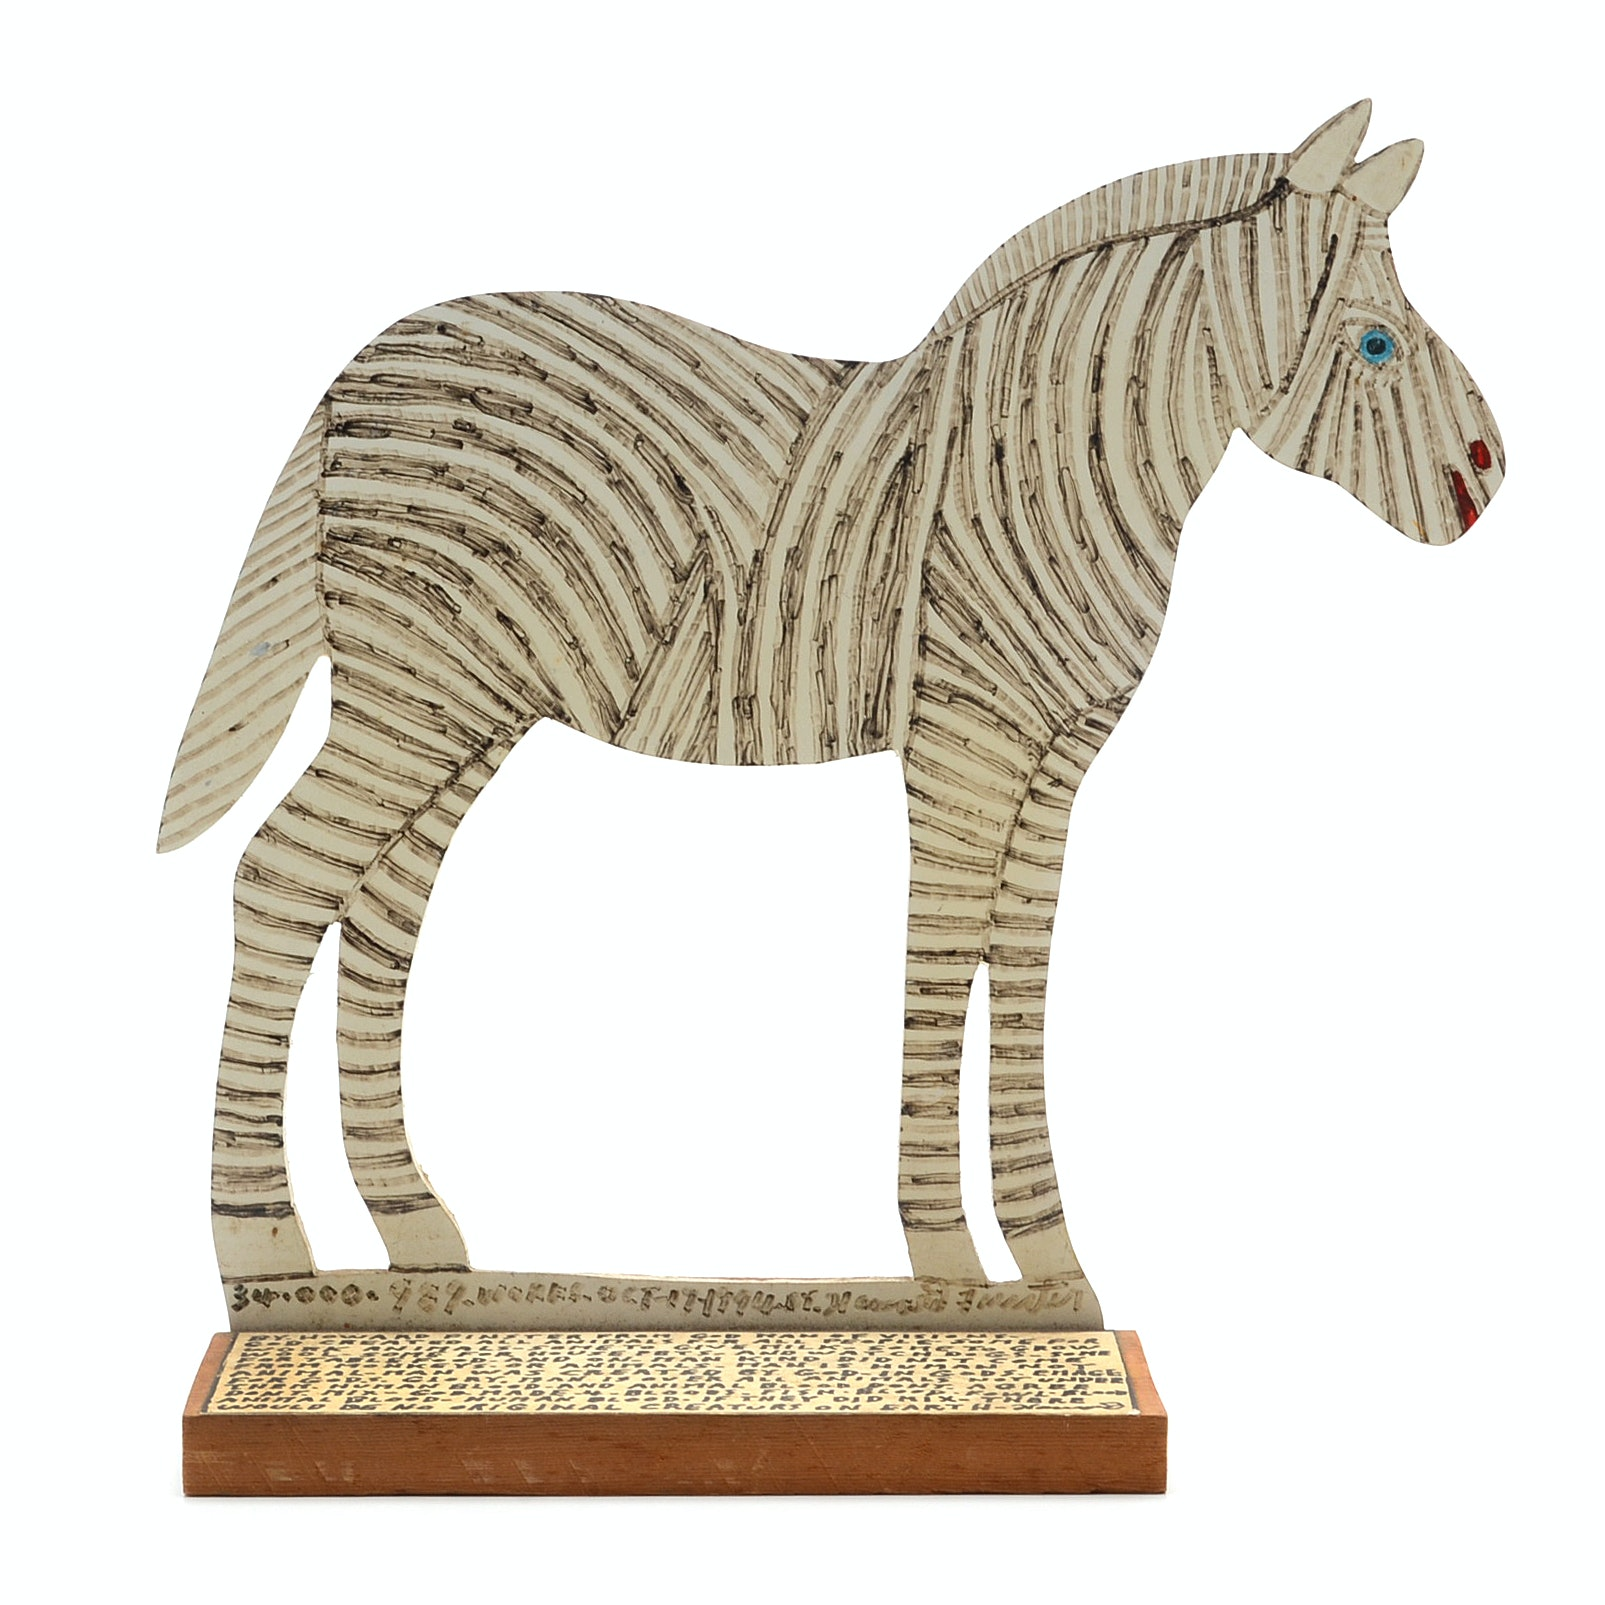 Howard Finster Oil and Marker on Shaped Wood Sculpture of a Zebra